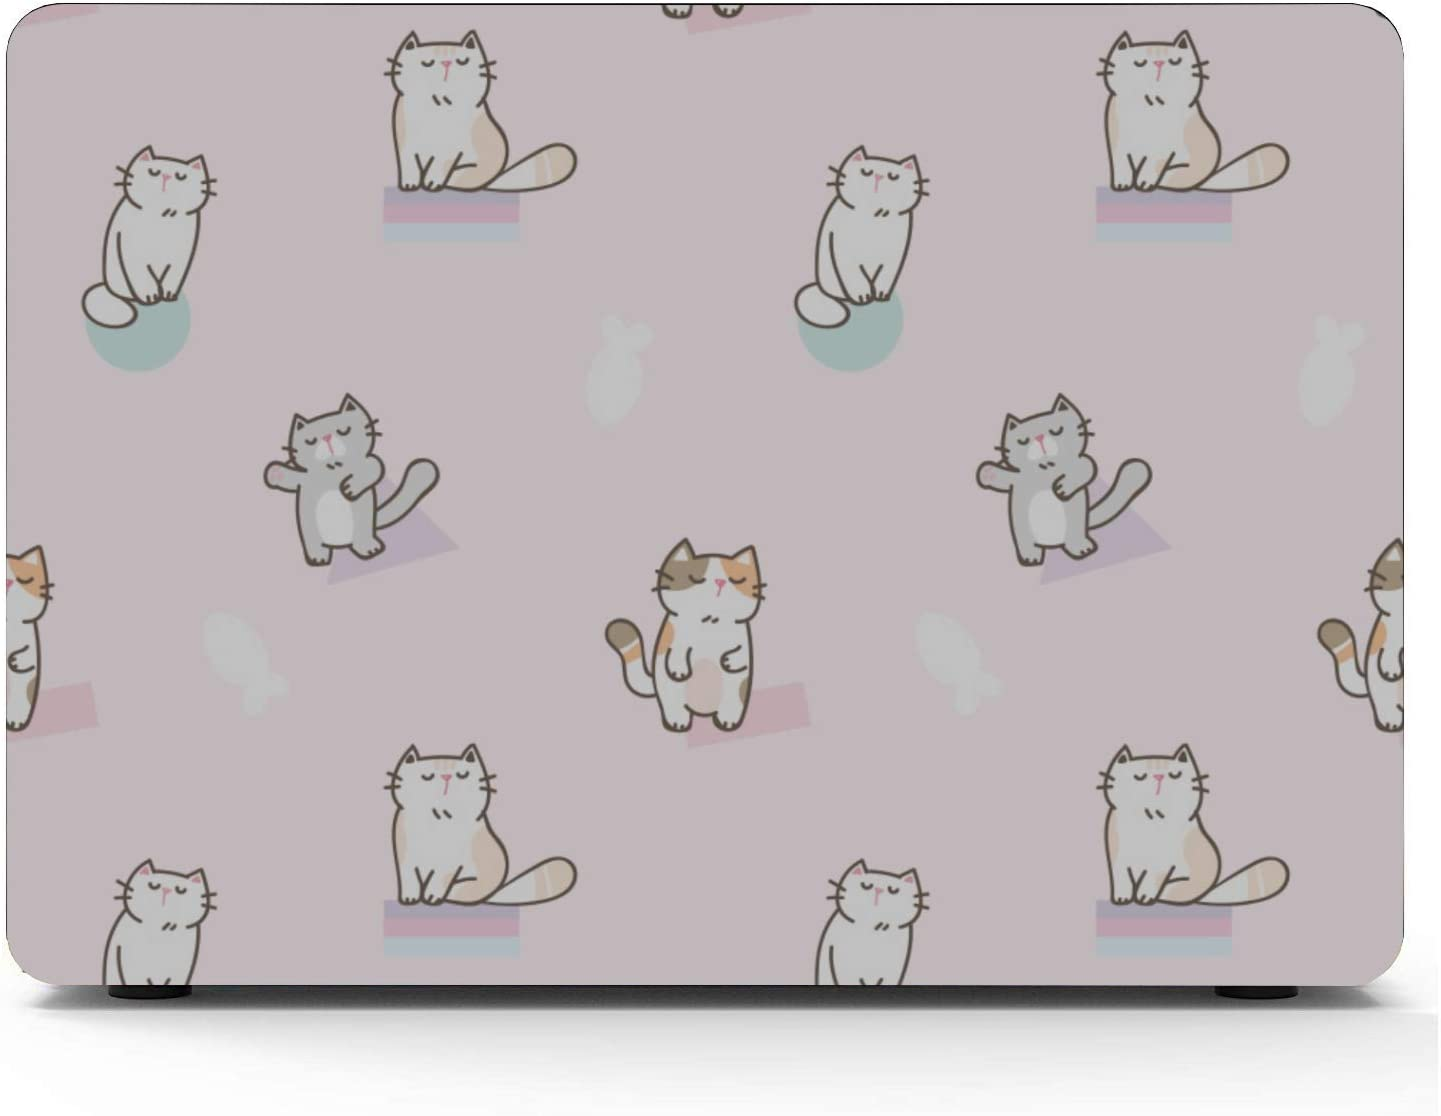 Laptop Hard Case Smart Warm Heart Gift Animal Pet Cat Plastic Hard Shell Compatible Mac Air 11 Pro 13 15 Mac Book Air Covers Protection for MacBook 2016-2019 Version